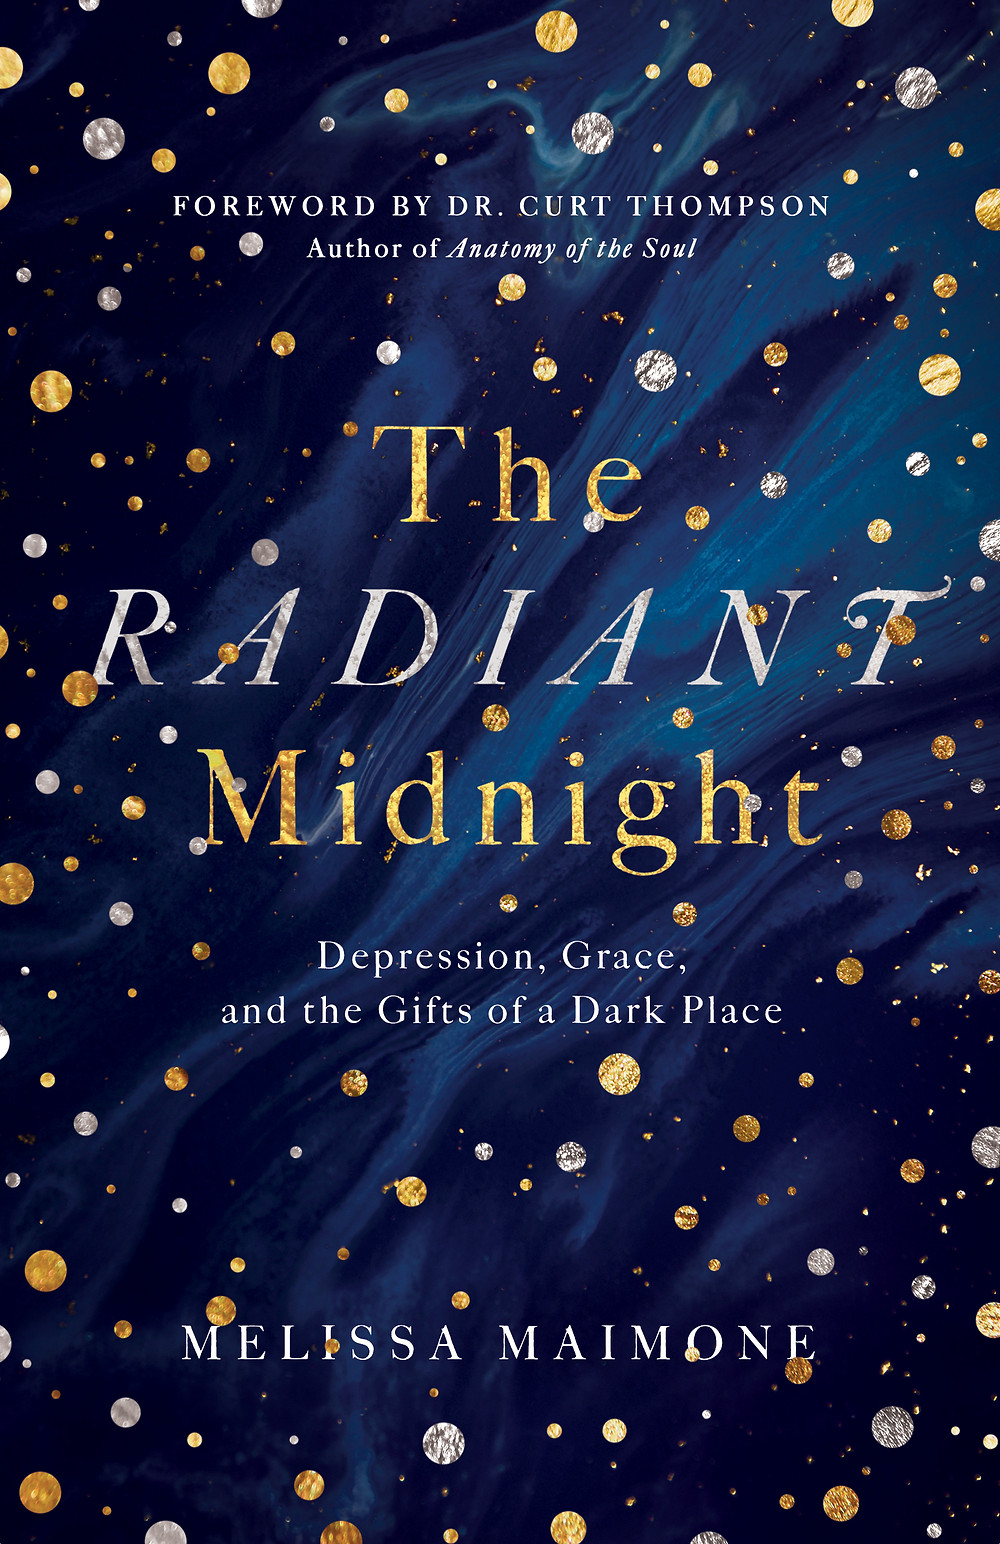 The Radiant Midnight by Melissa Maimone